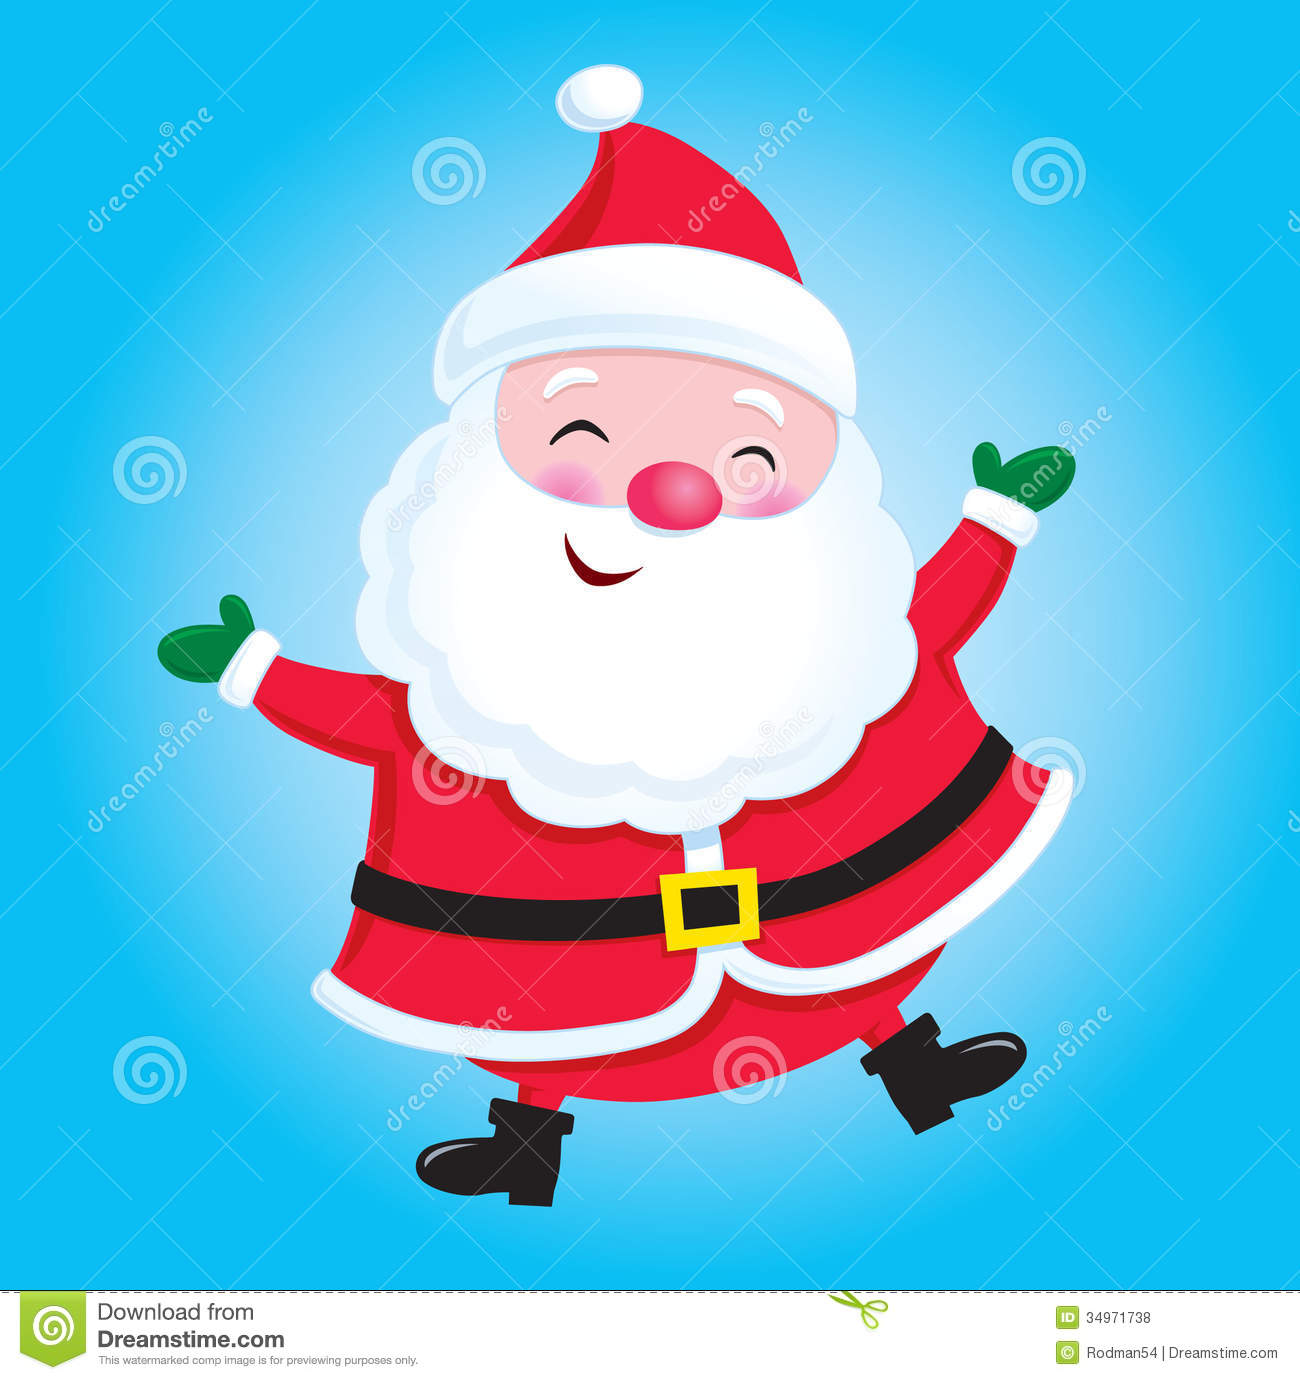 http://thumbs.dreamstime.com/z/happy-santa-claus-cartoon-illustration-smiling-jolly-character-his-arms-up-against-blue-gradated-background-34971738.jpg